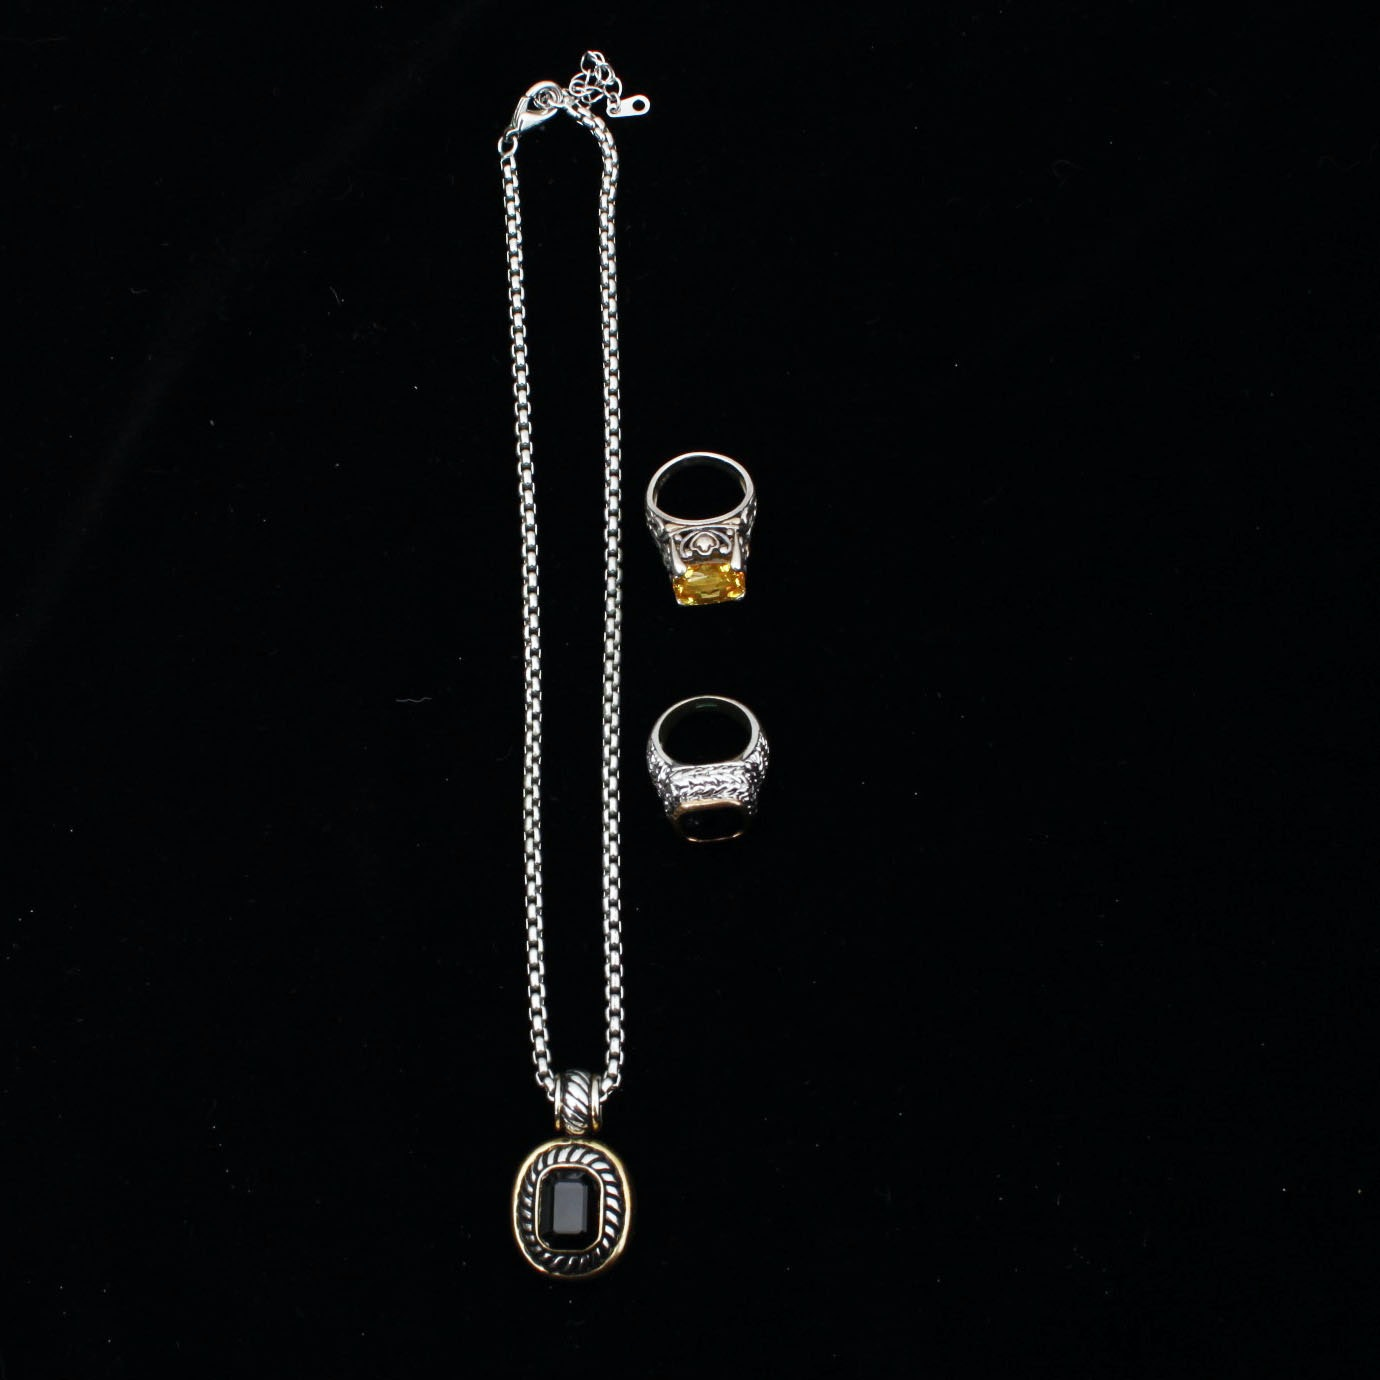 Fashionable Costume Rings and Necklace